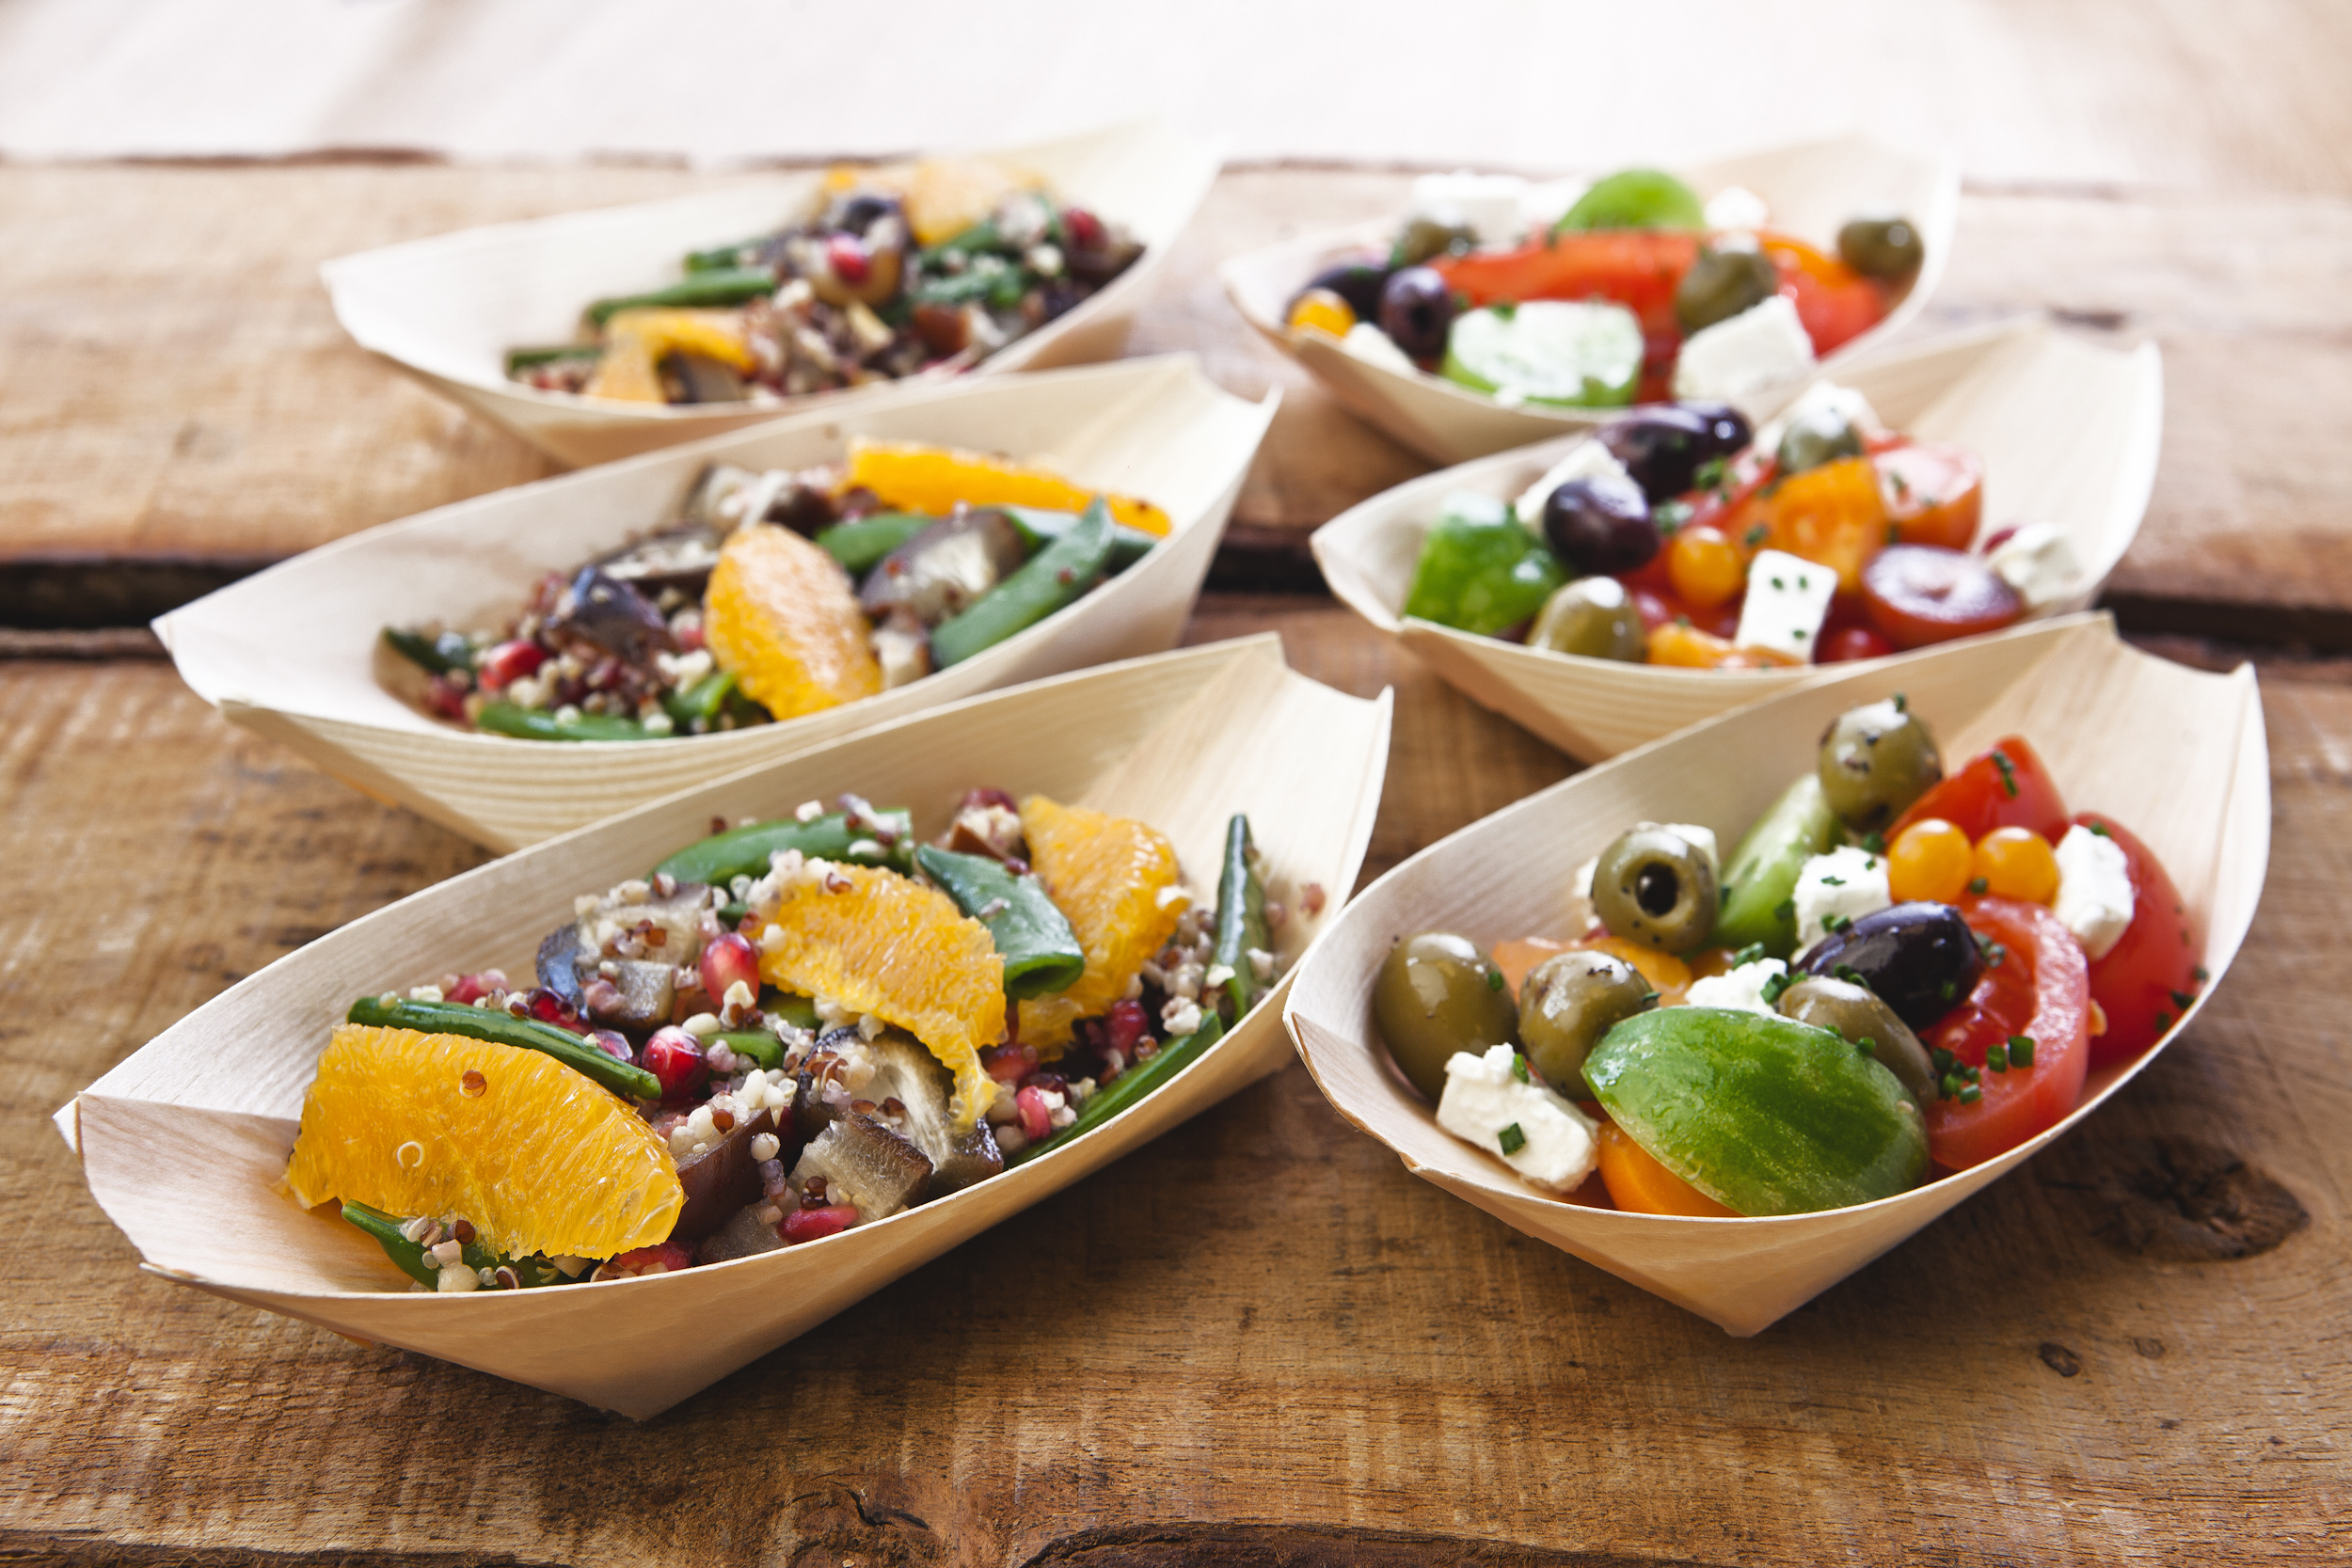 Healthy eating for delegates that packed with flavour